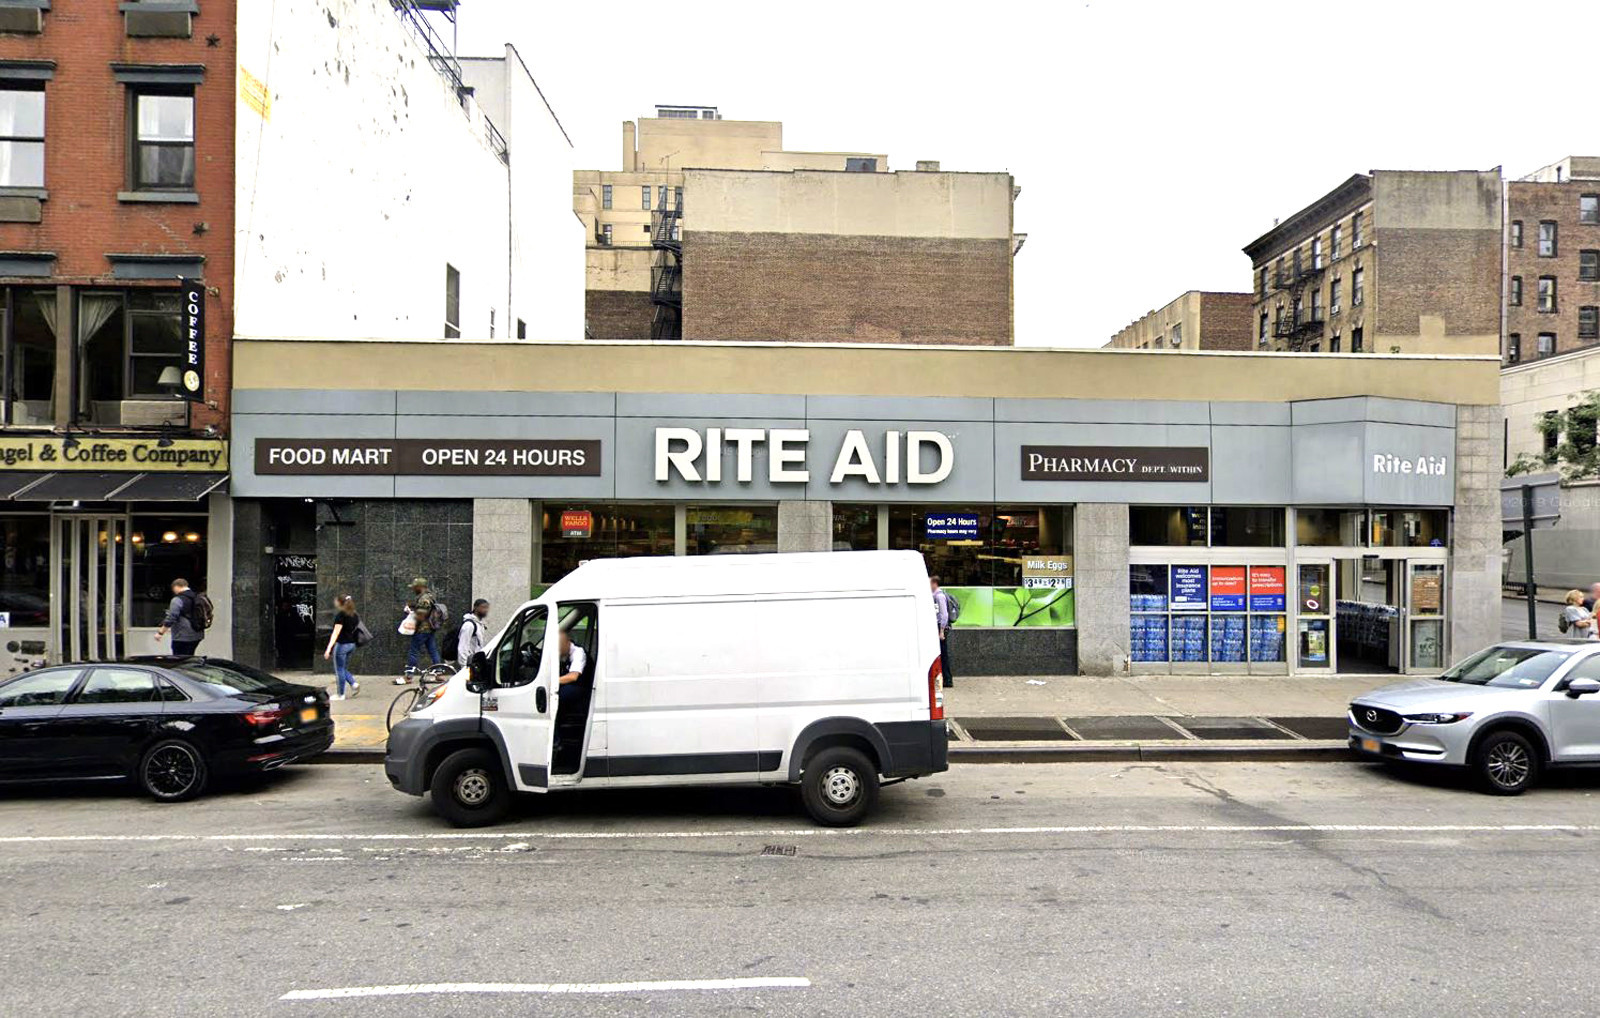 Beer bandit pulls needle on Manhattan store worker, threatens to give him AIDS